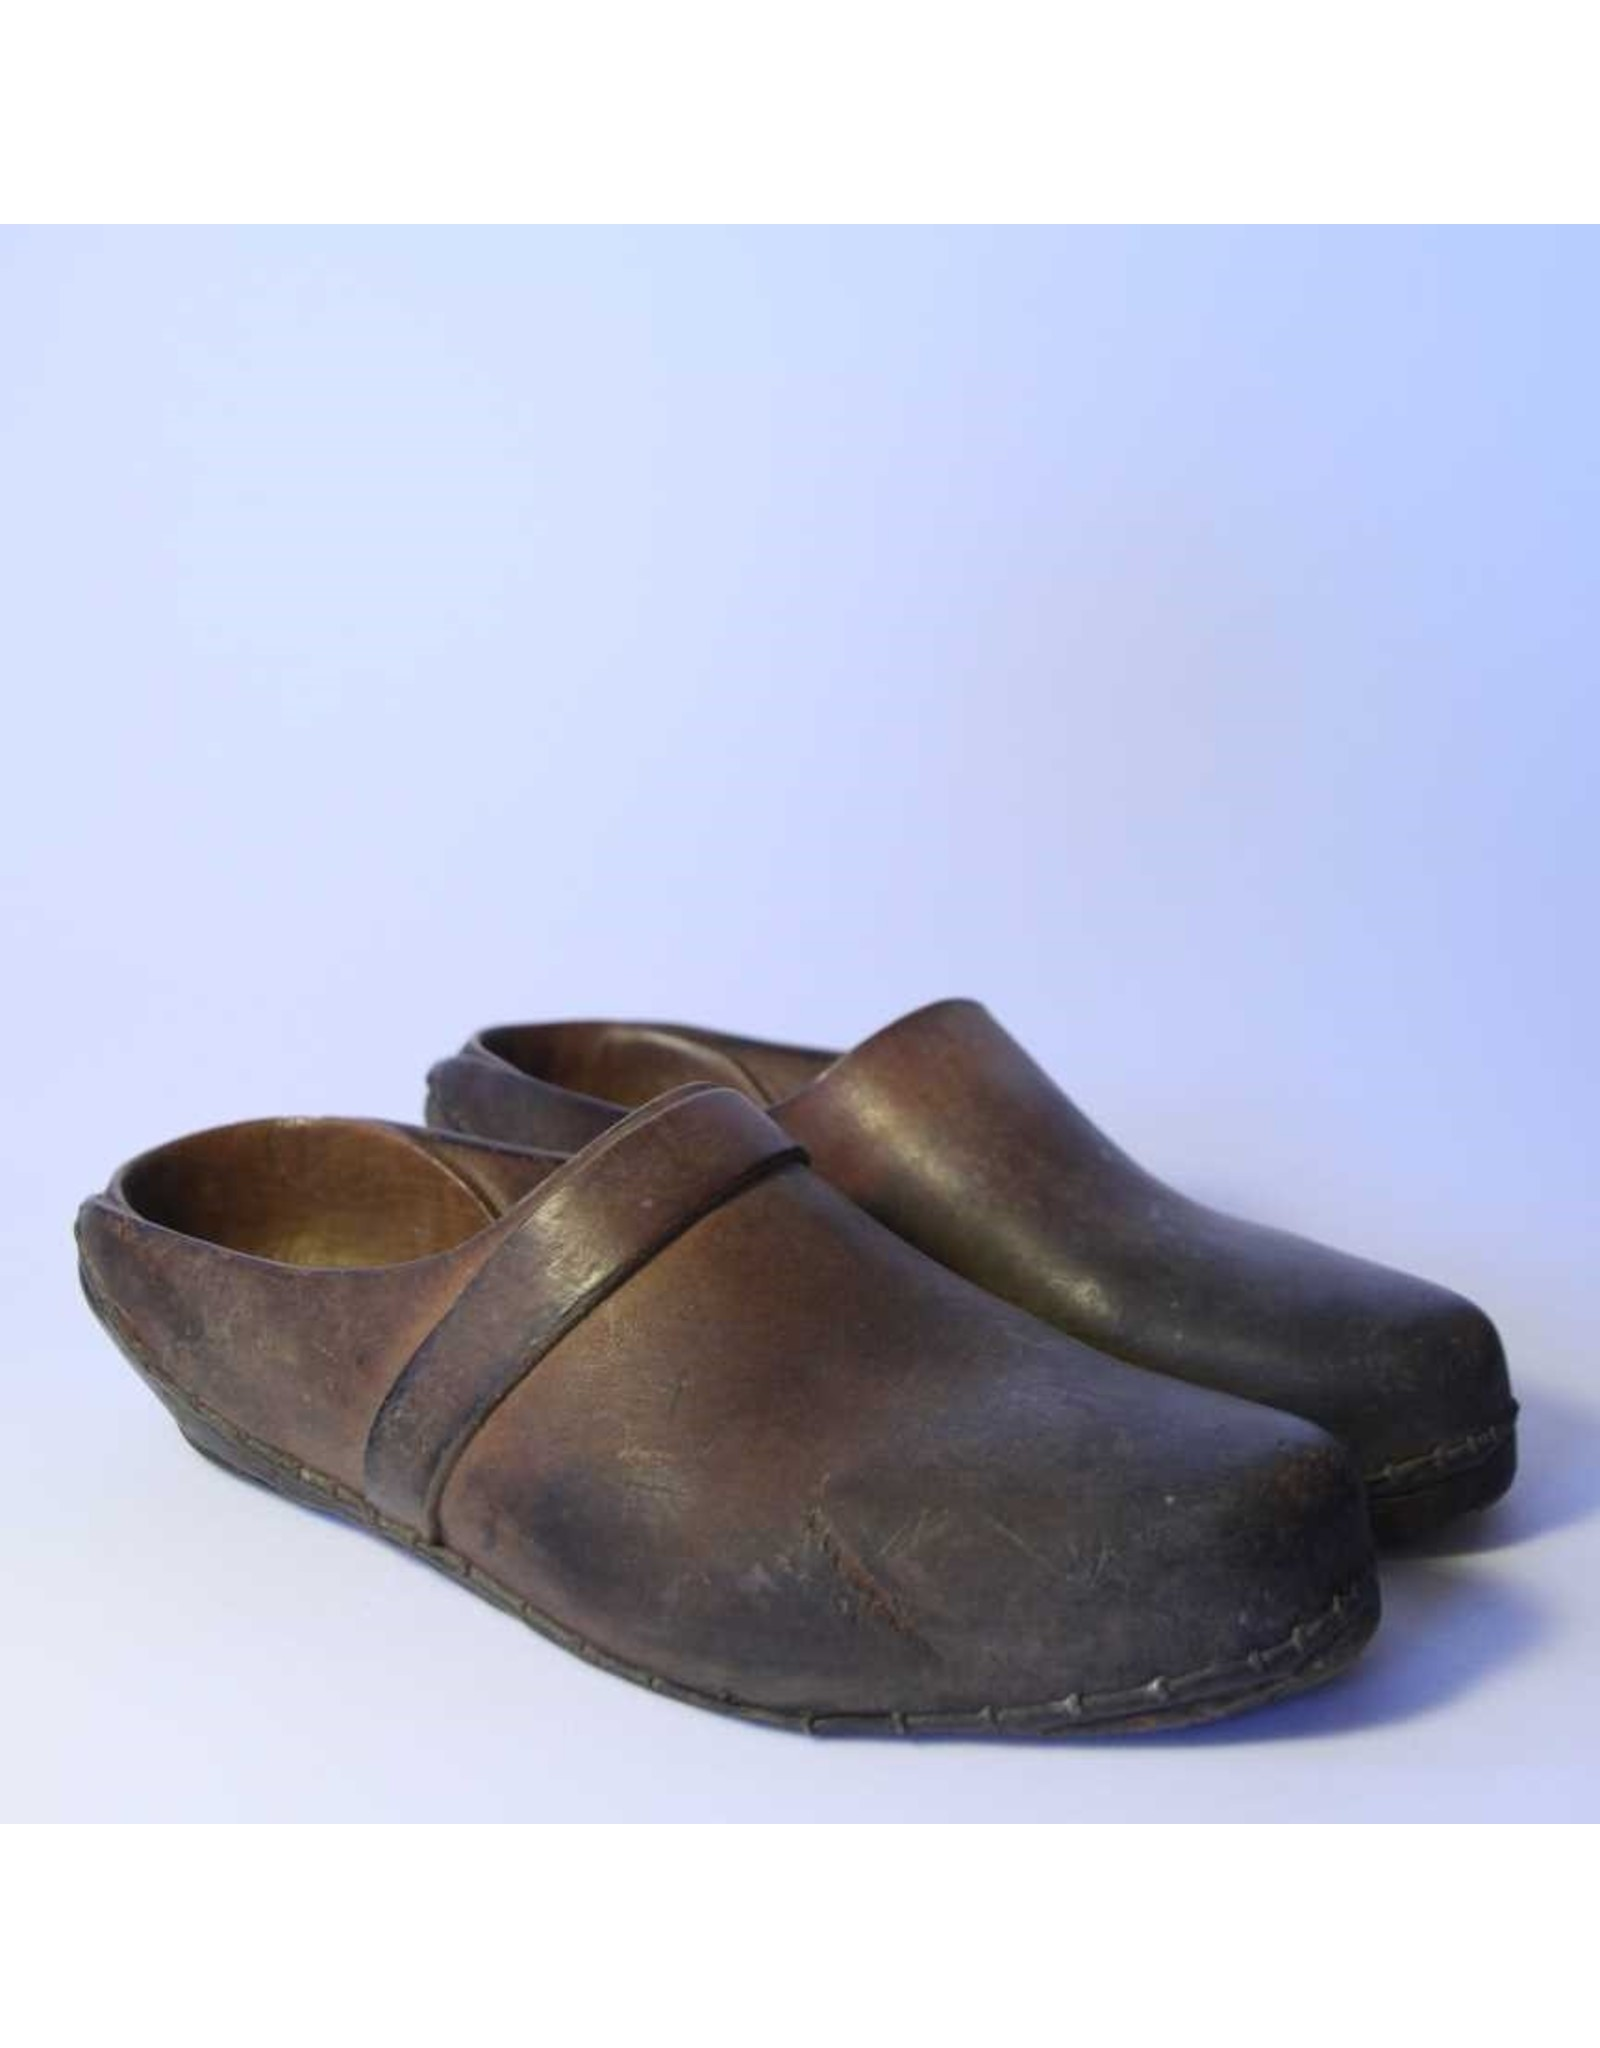 Clogs - handmade, wood and leather, metal wire binding